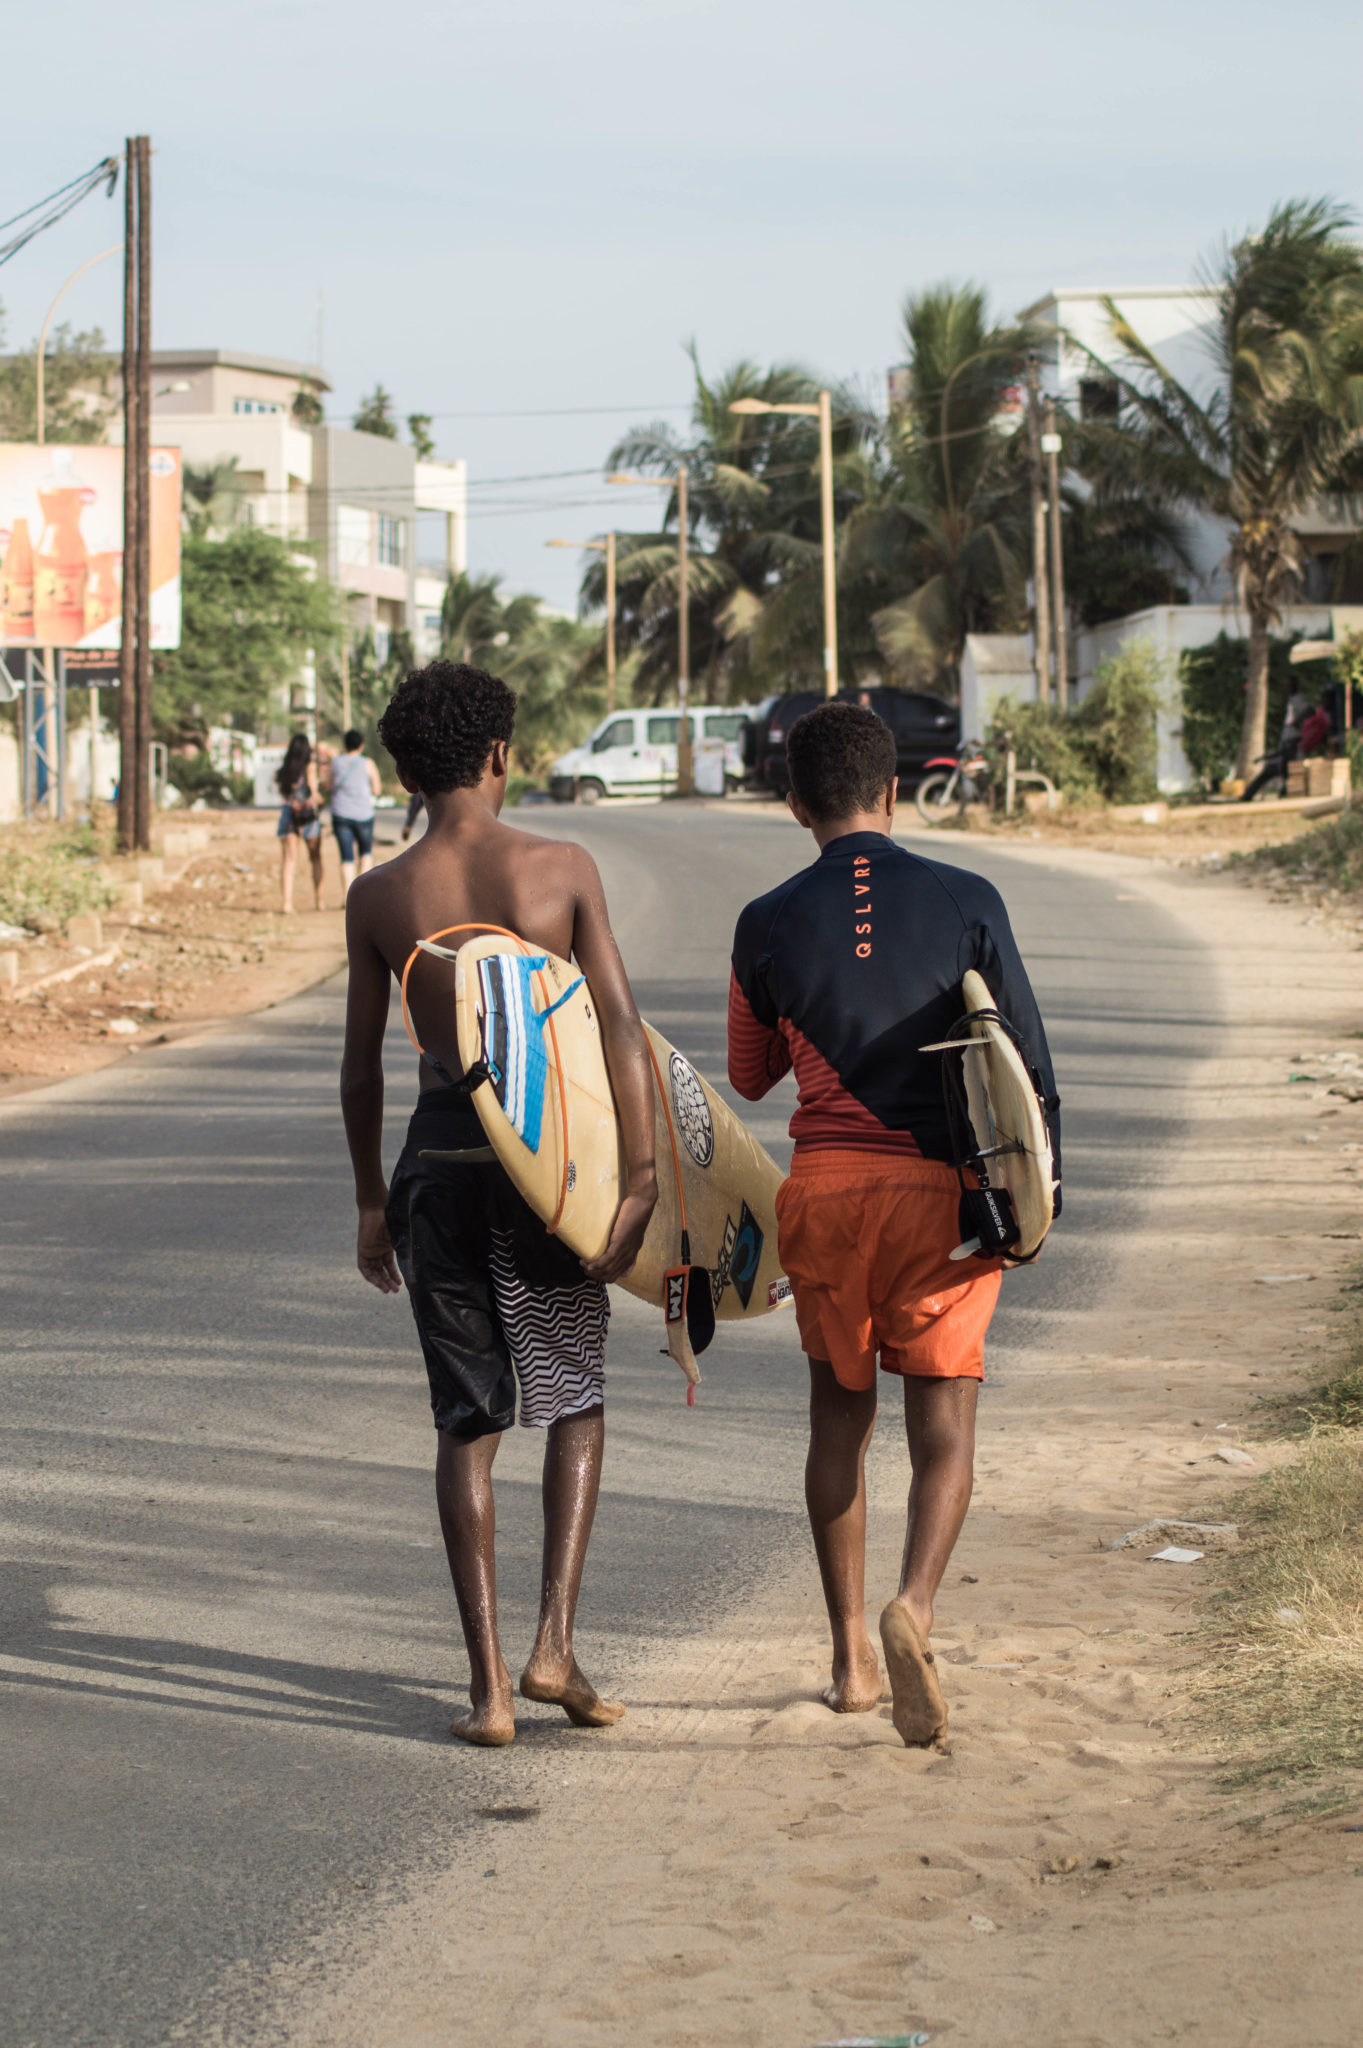 Senegal Surf: These two kids just finished off their session at Les Almadies in Dakar